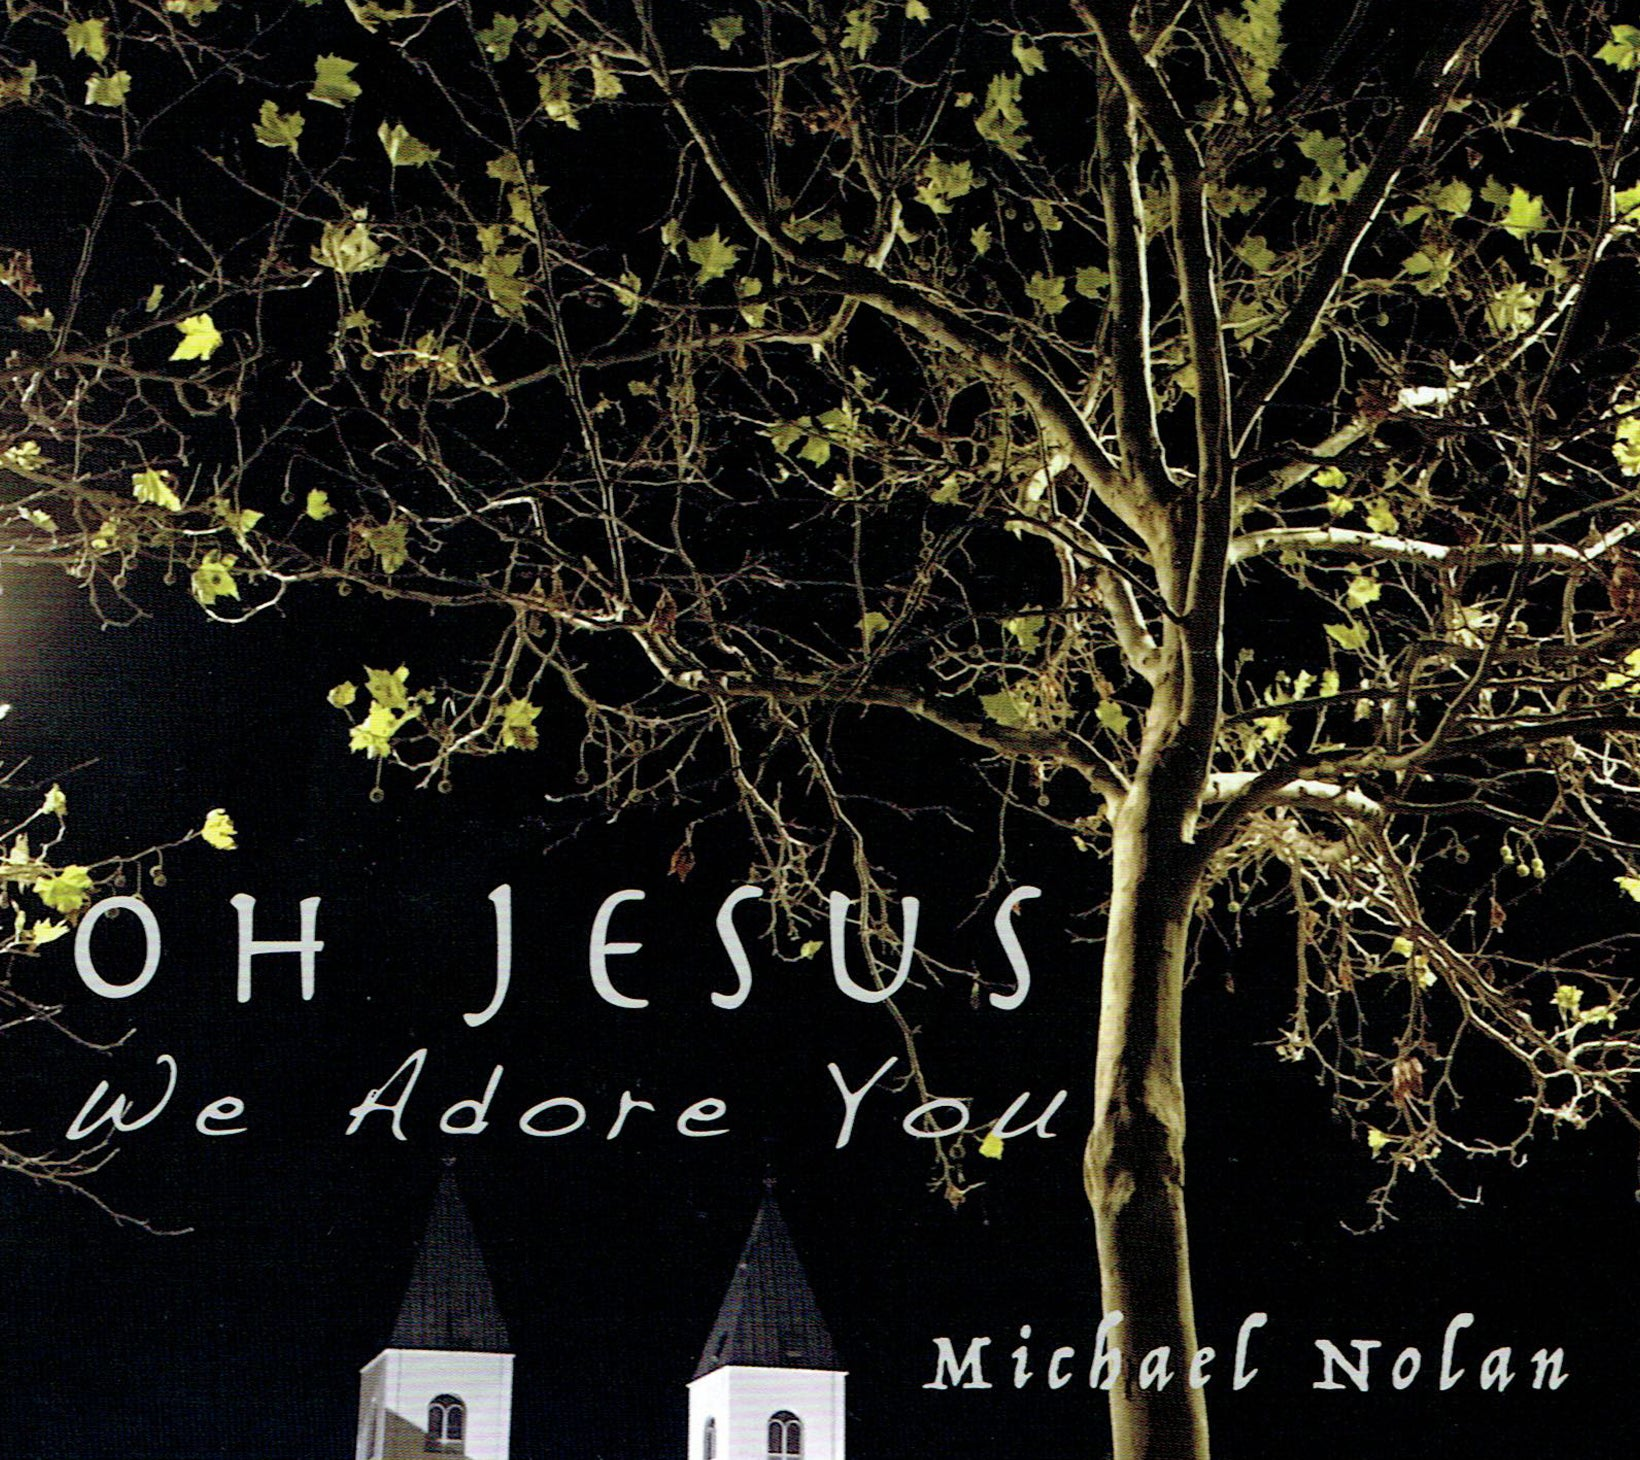 OH JESUS We Adore you